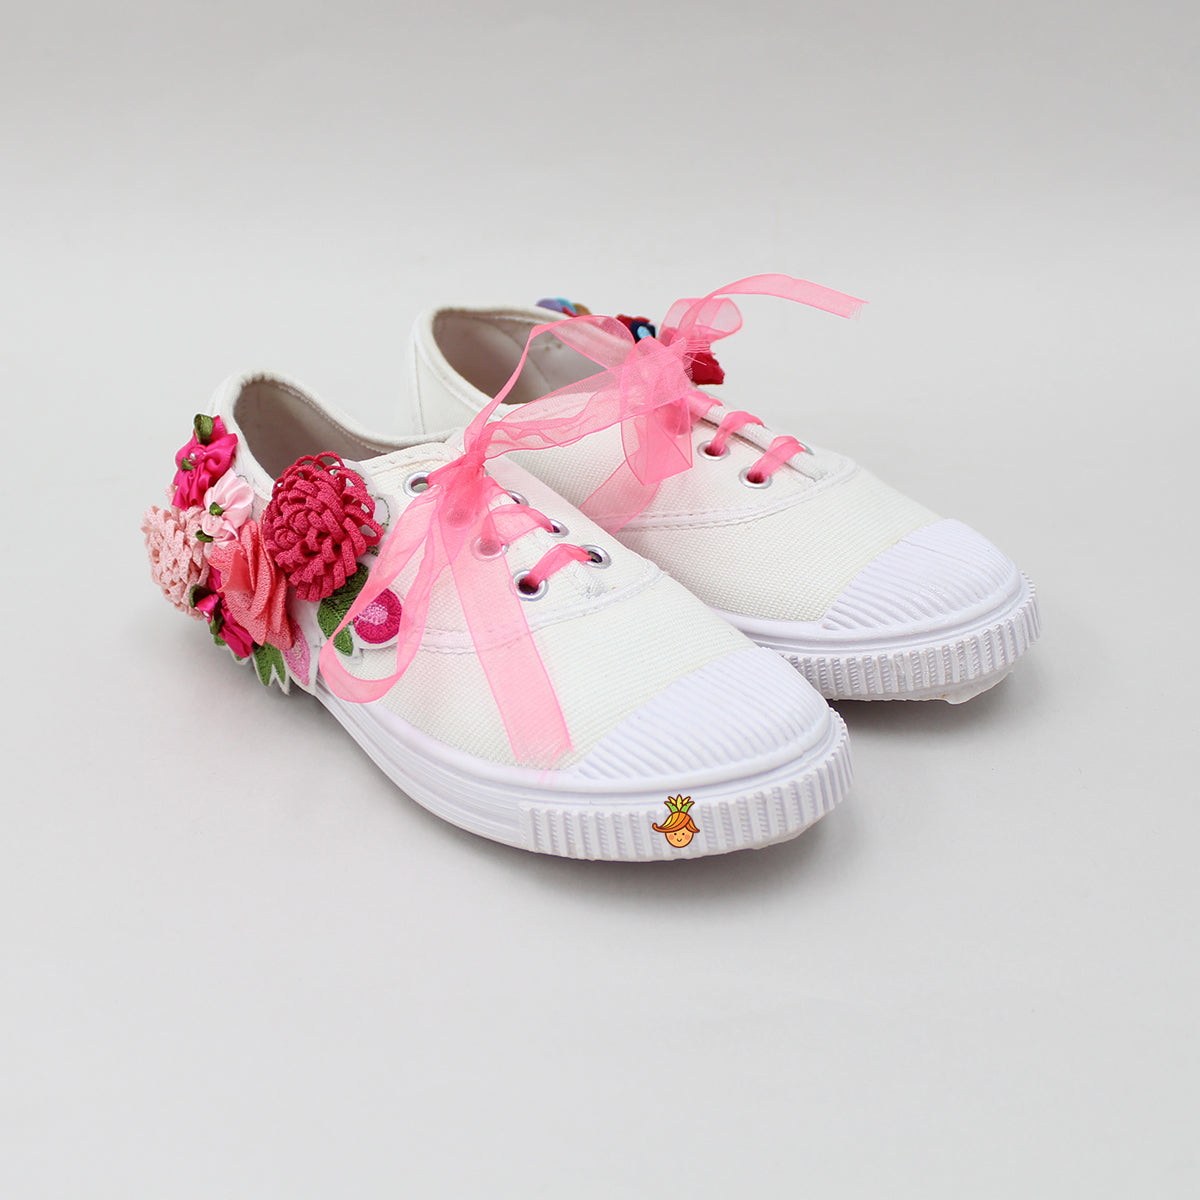 Pink Floral White Shoes